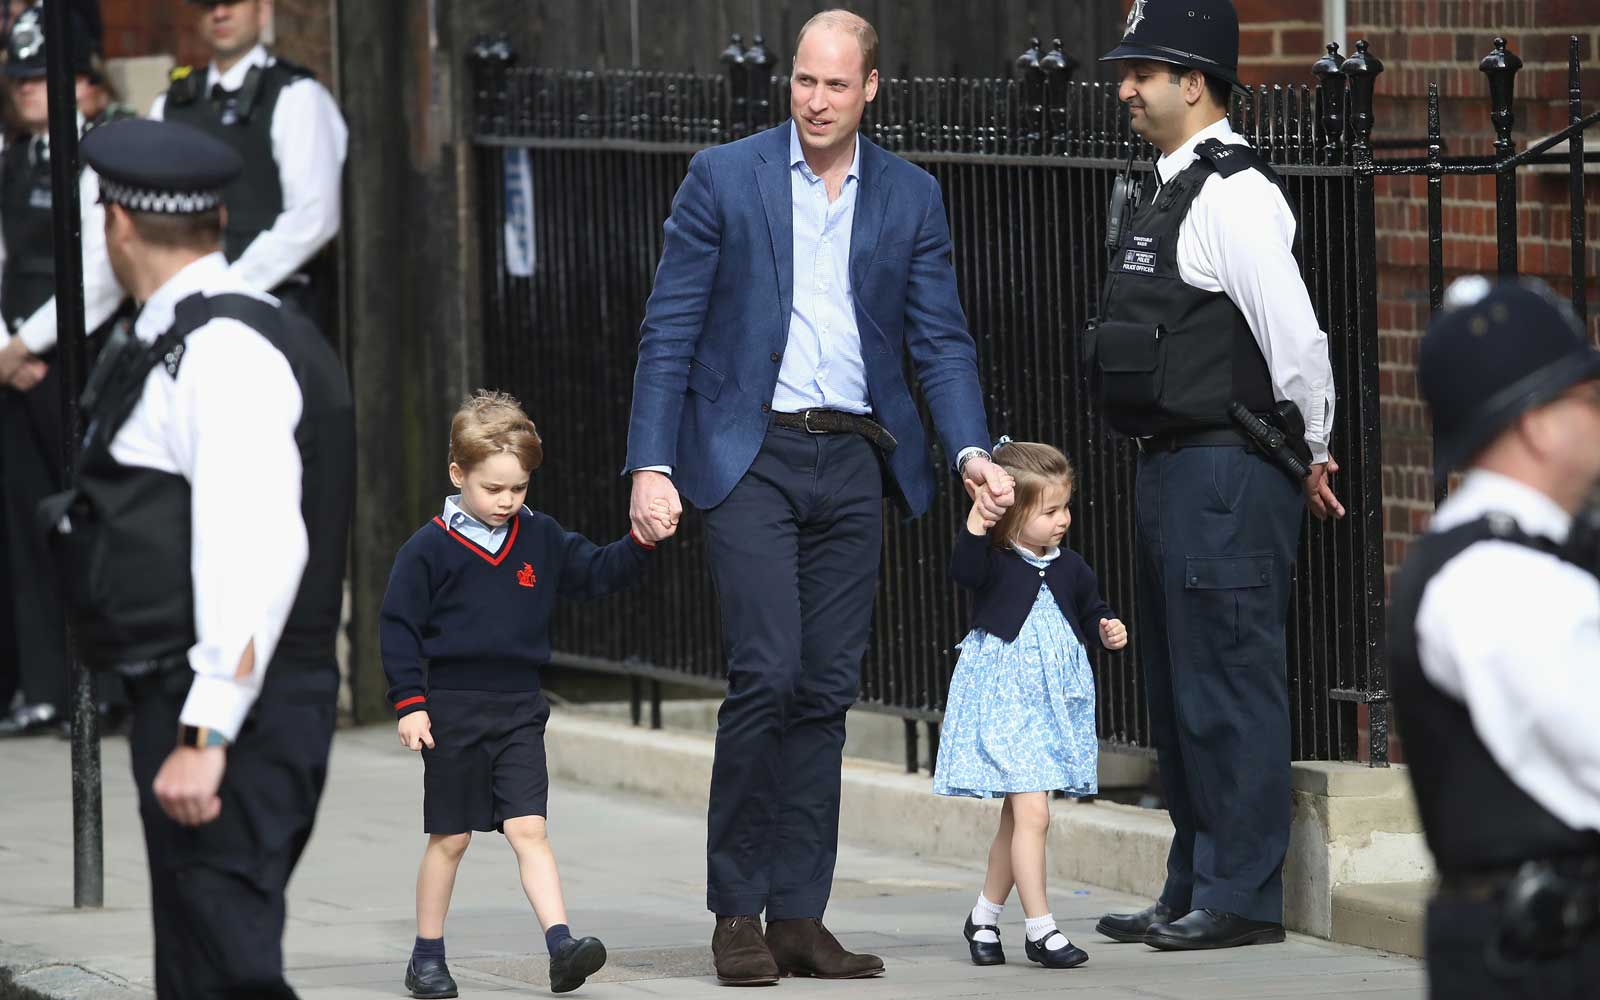 Prince William Reveals One of Prince George and Princess Charlotte's Favorite Children's Books